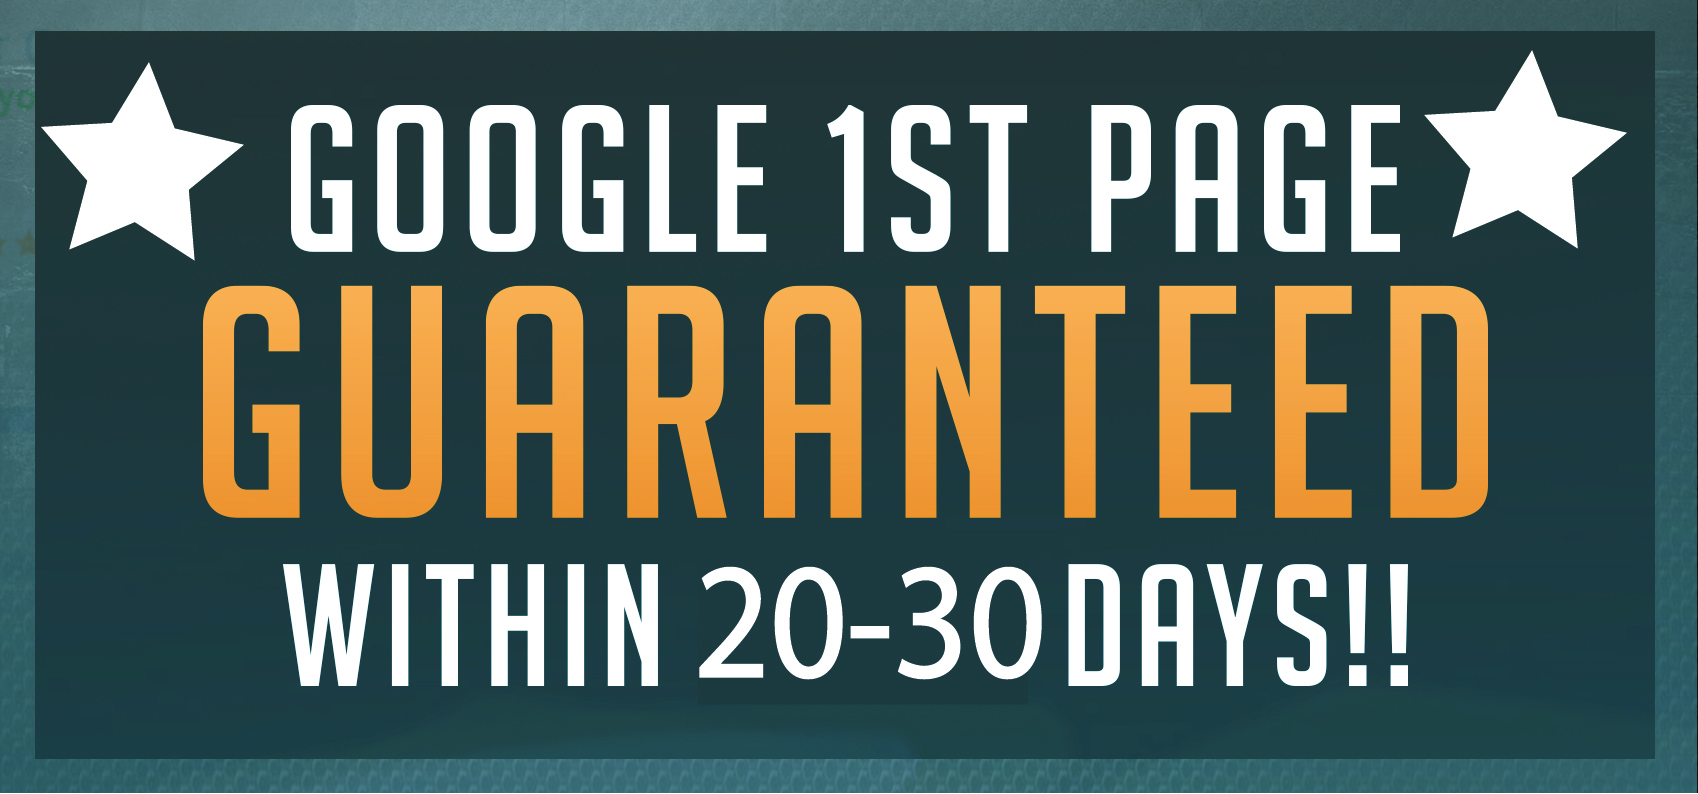 Do Google 1st Page Rank GUARANTEED Within 20-30 days